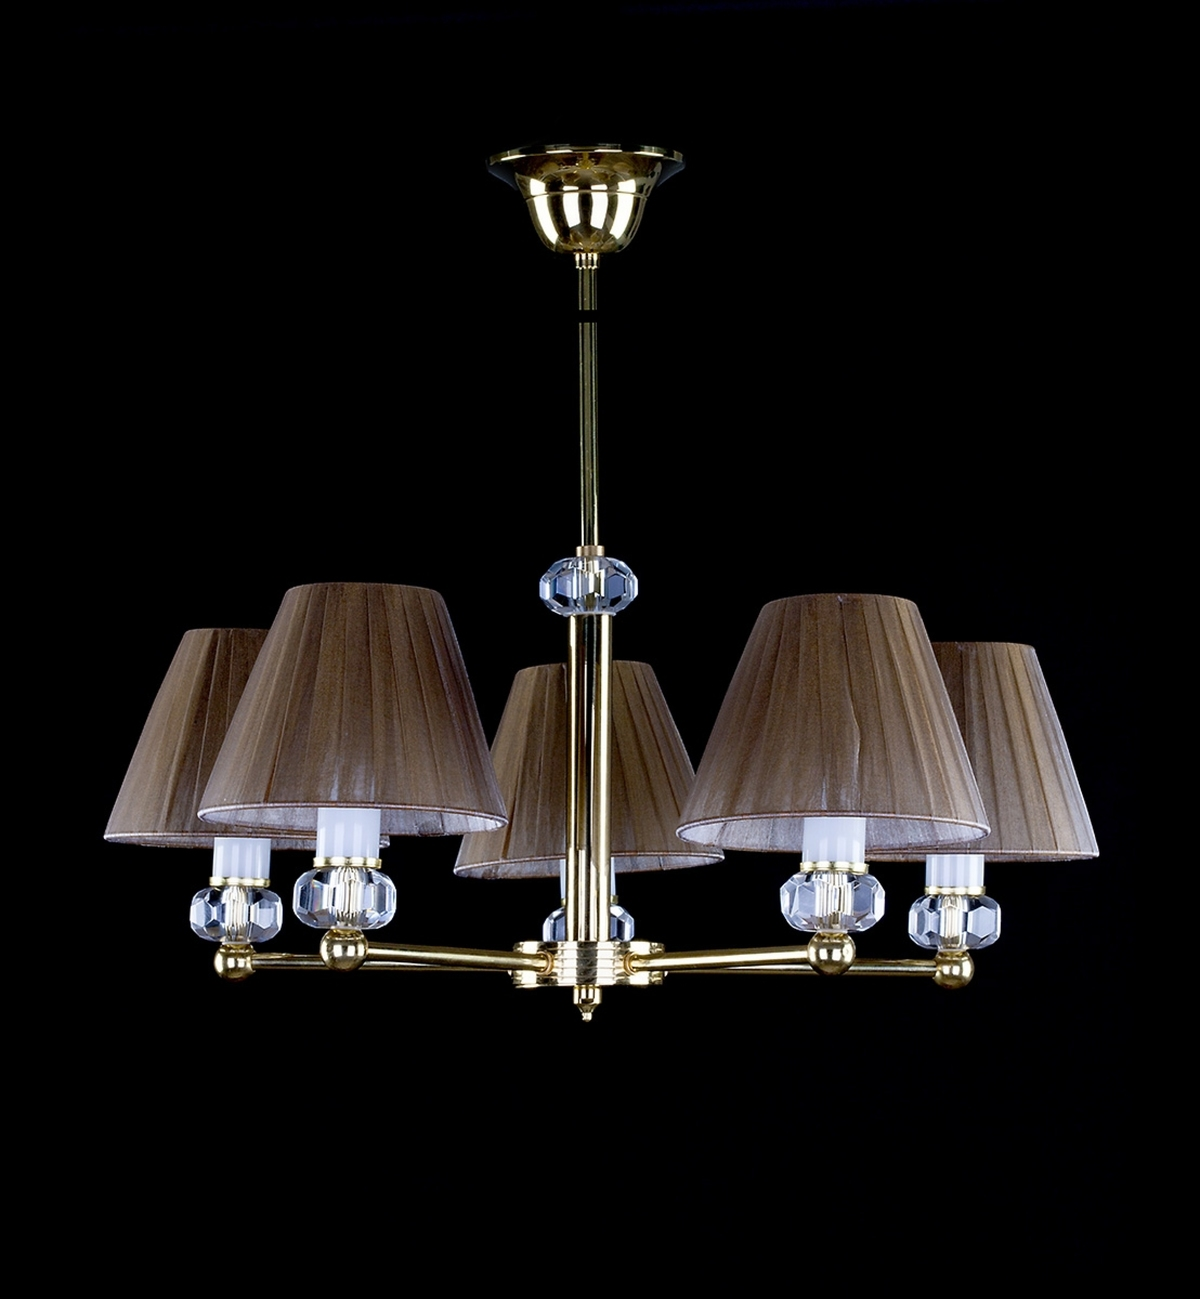 Lamp DIAMOND 01-CH-PB-CH 024. Brown